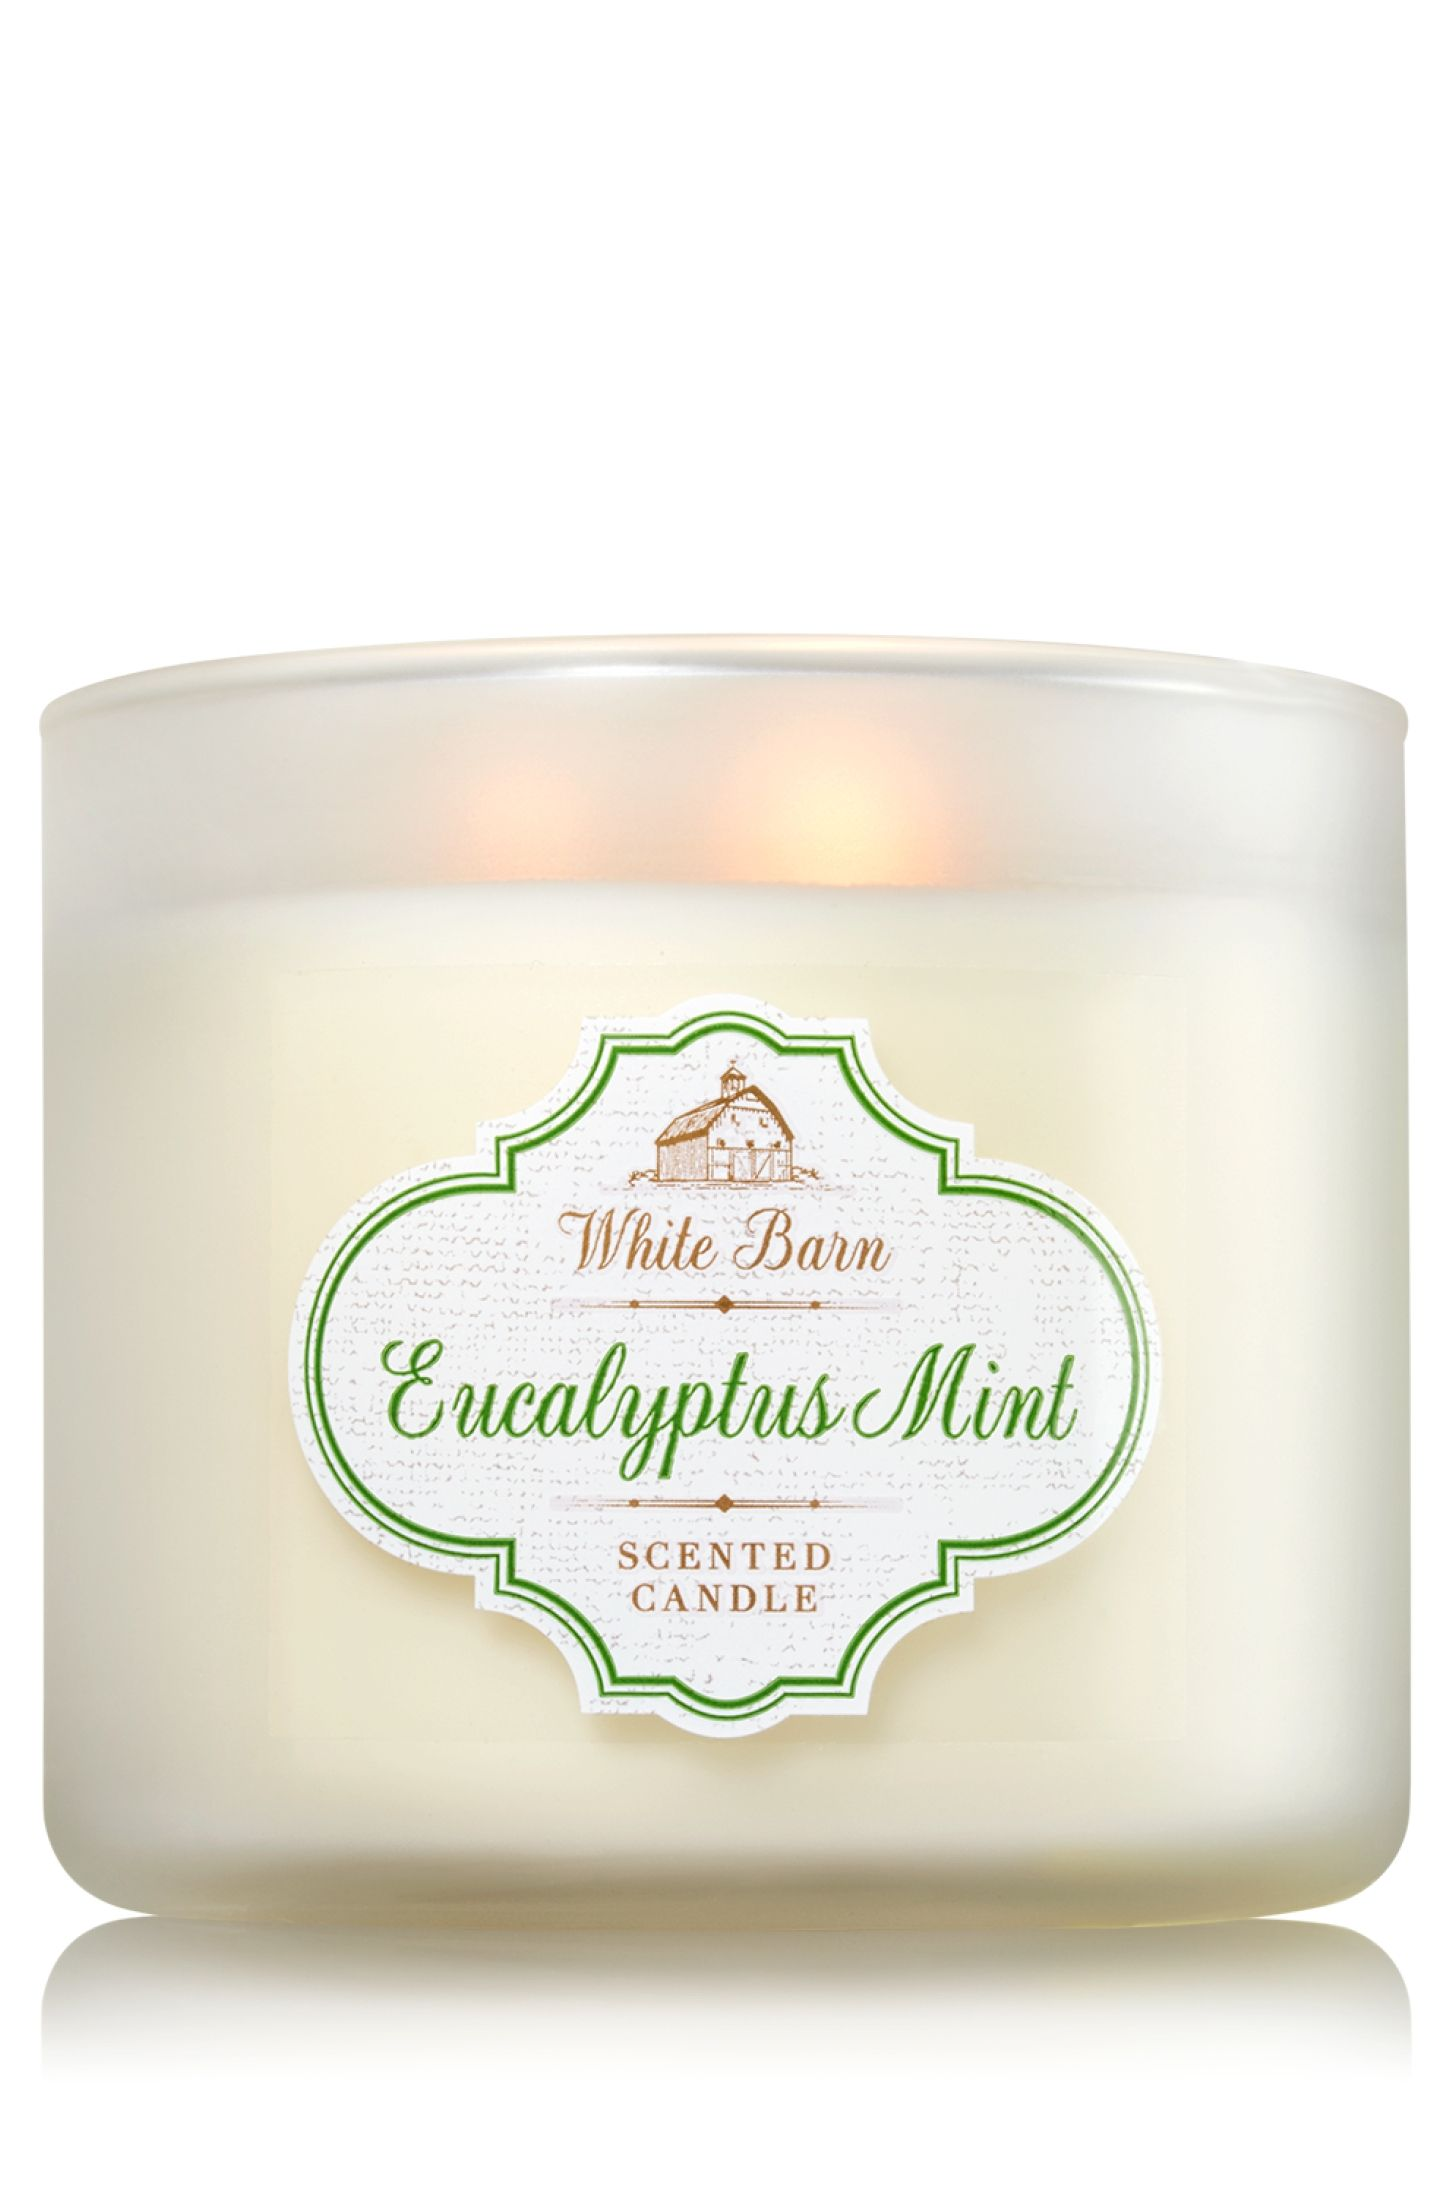 Eucalyptus Mint 3Wick Candle Home Fragrance 1037181